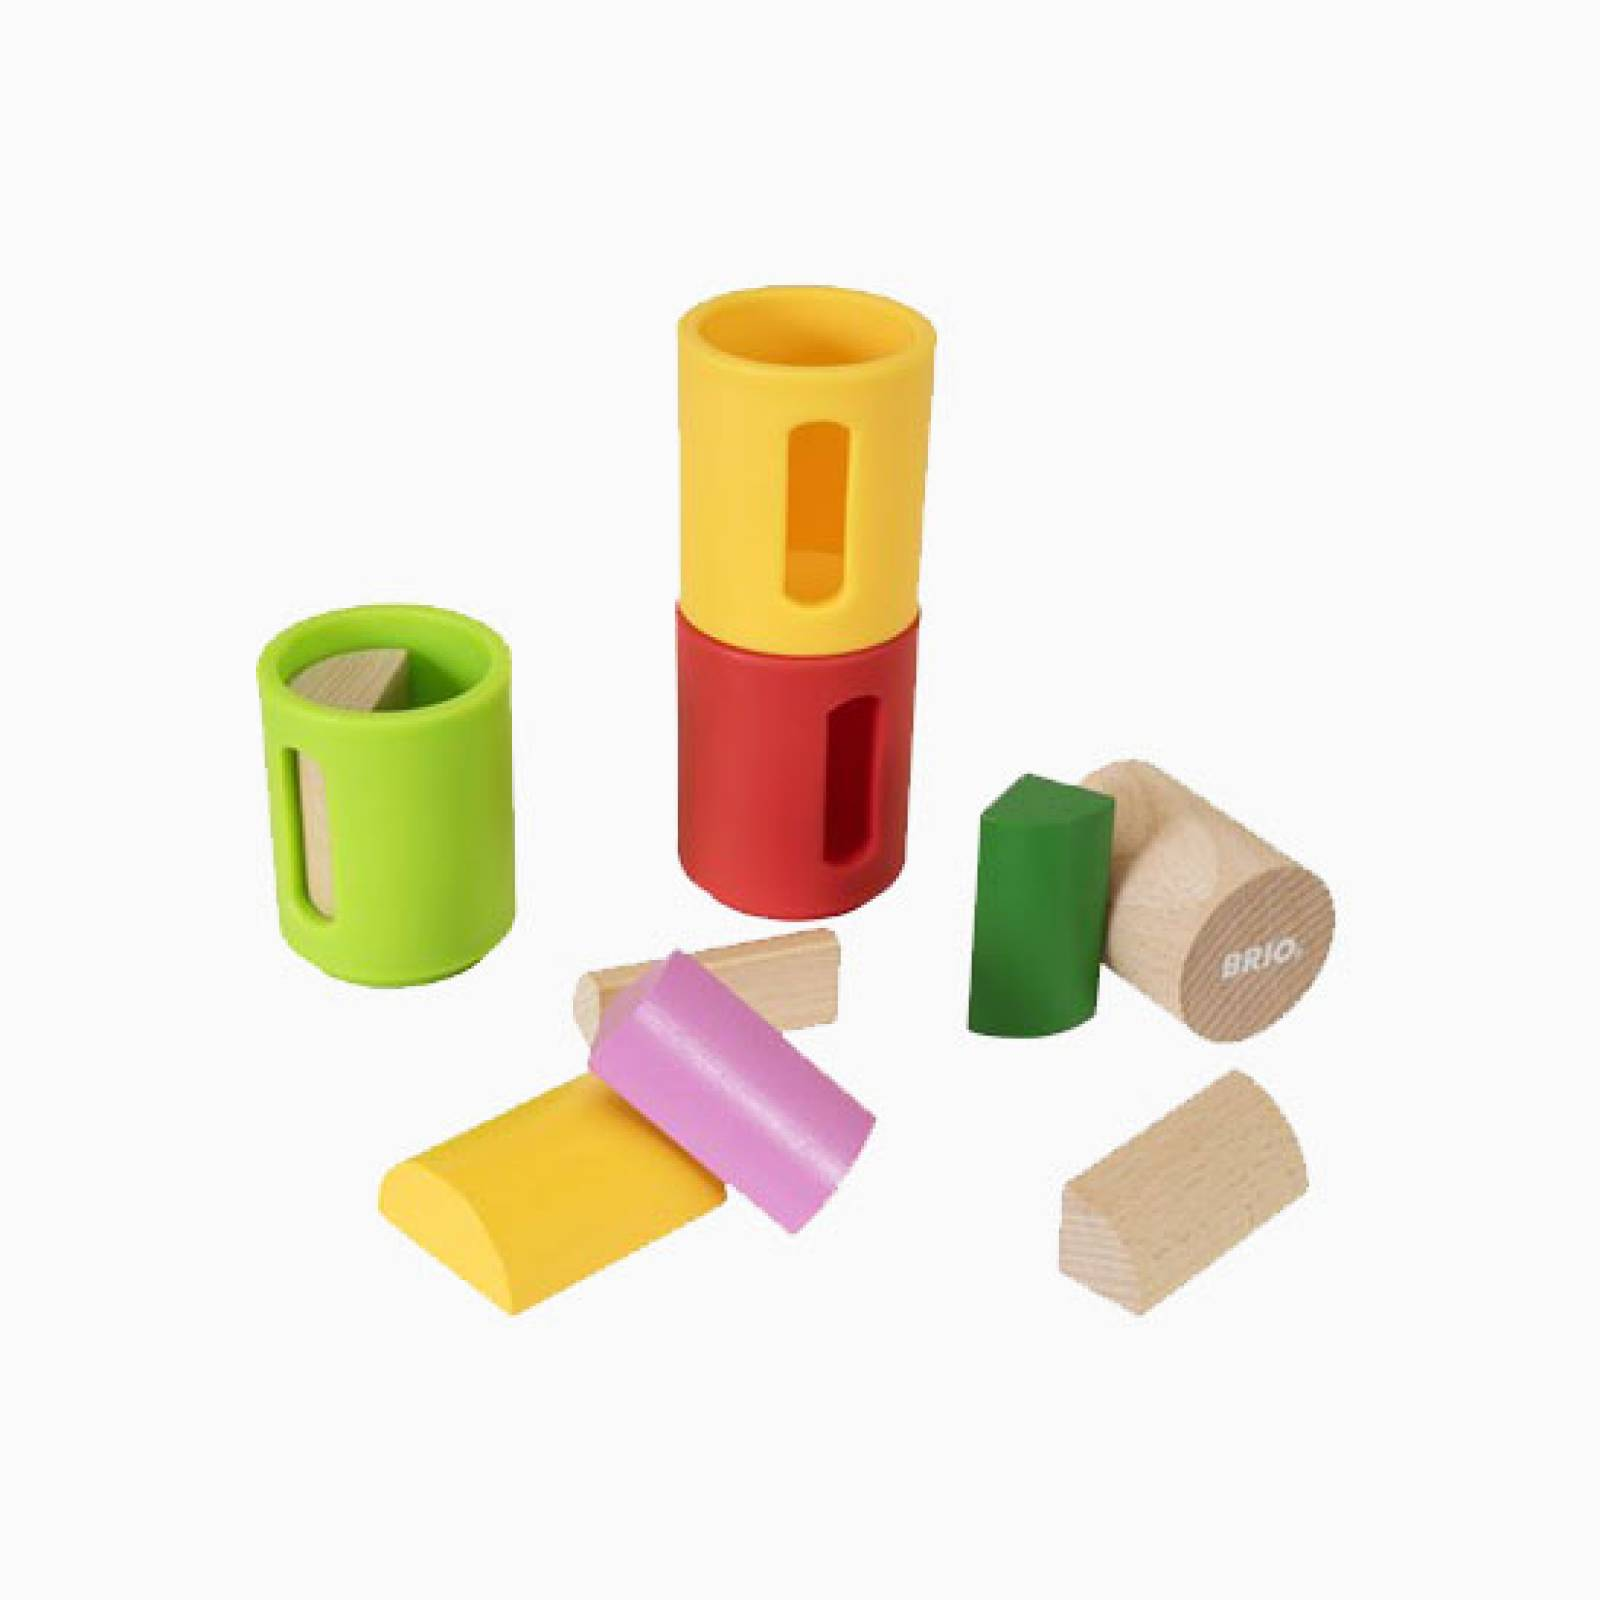 BRIO® Shape Sorter Set 1+